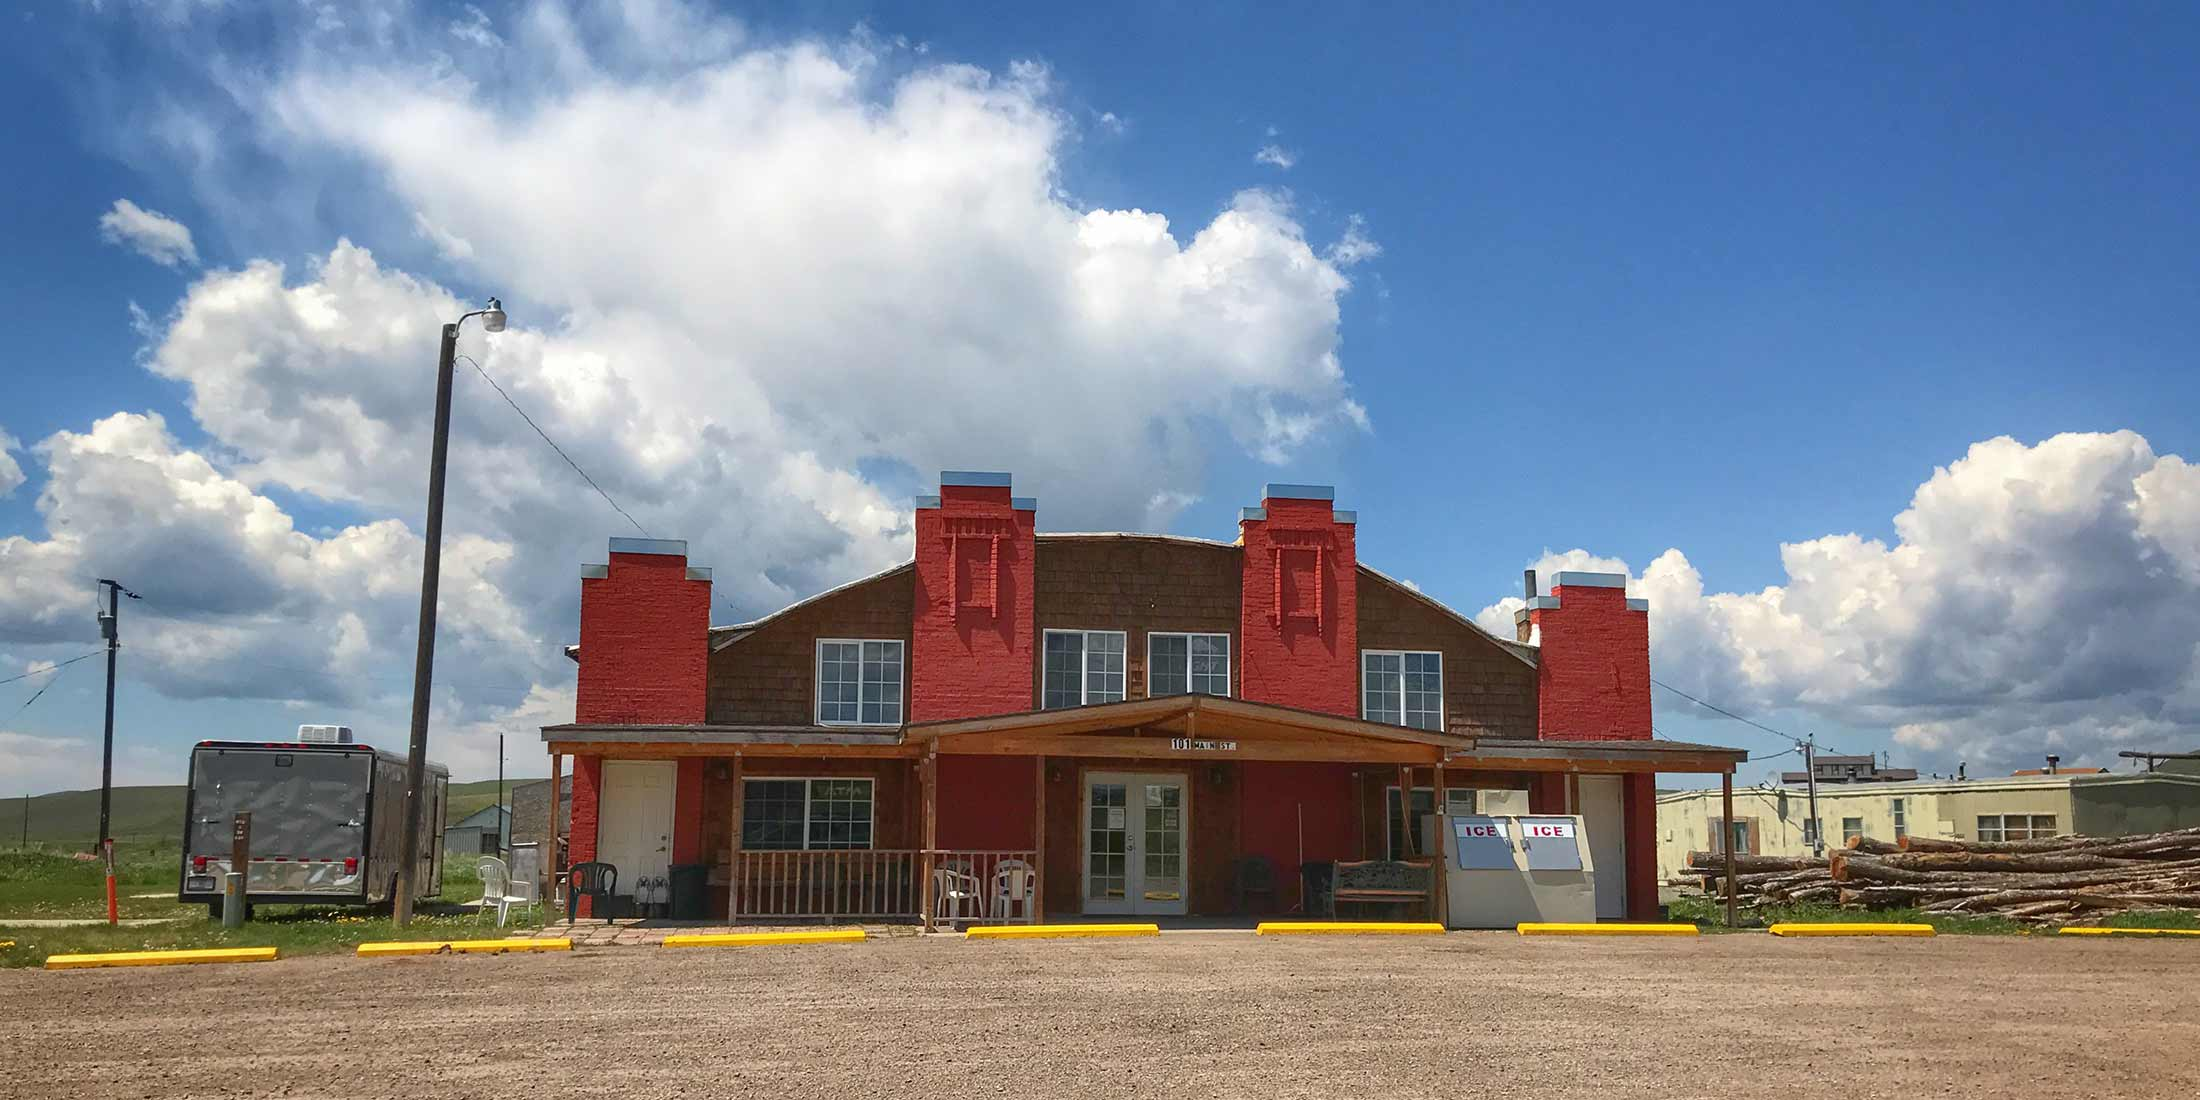 The Ringling Bar is located in Ringling, Montana on Highway 89 in Meagher County.